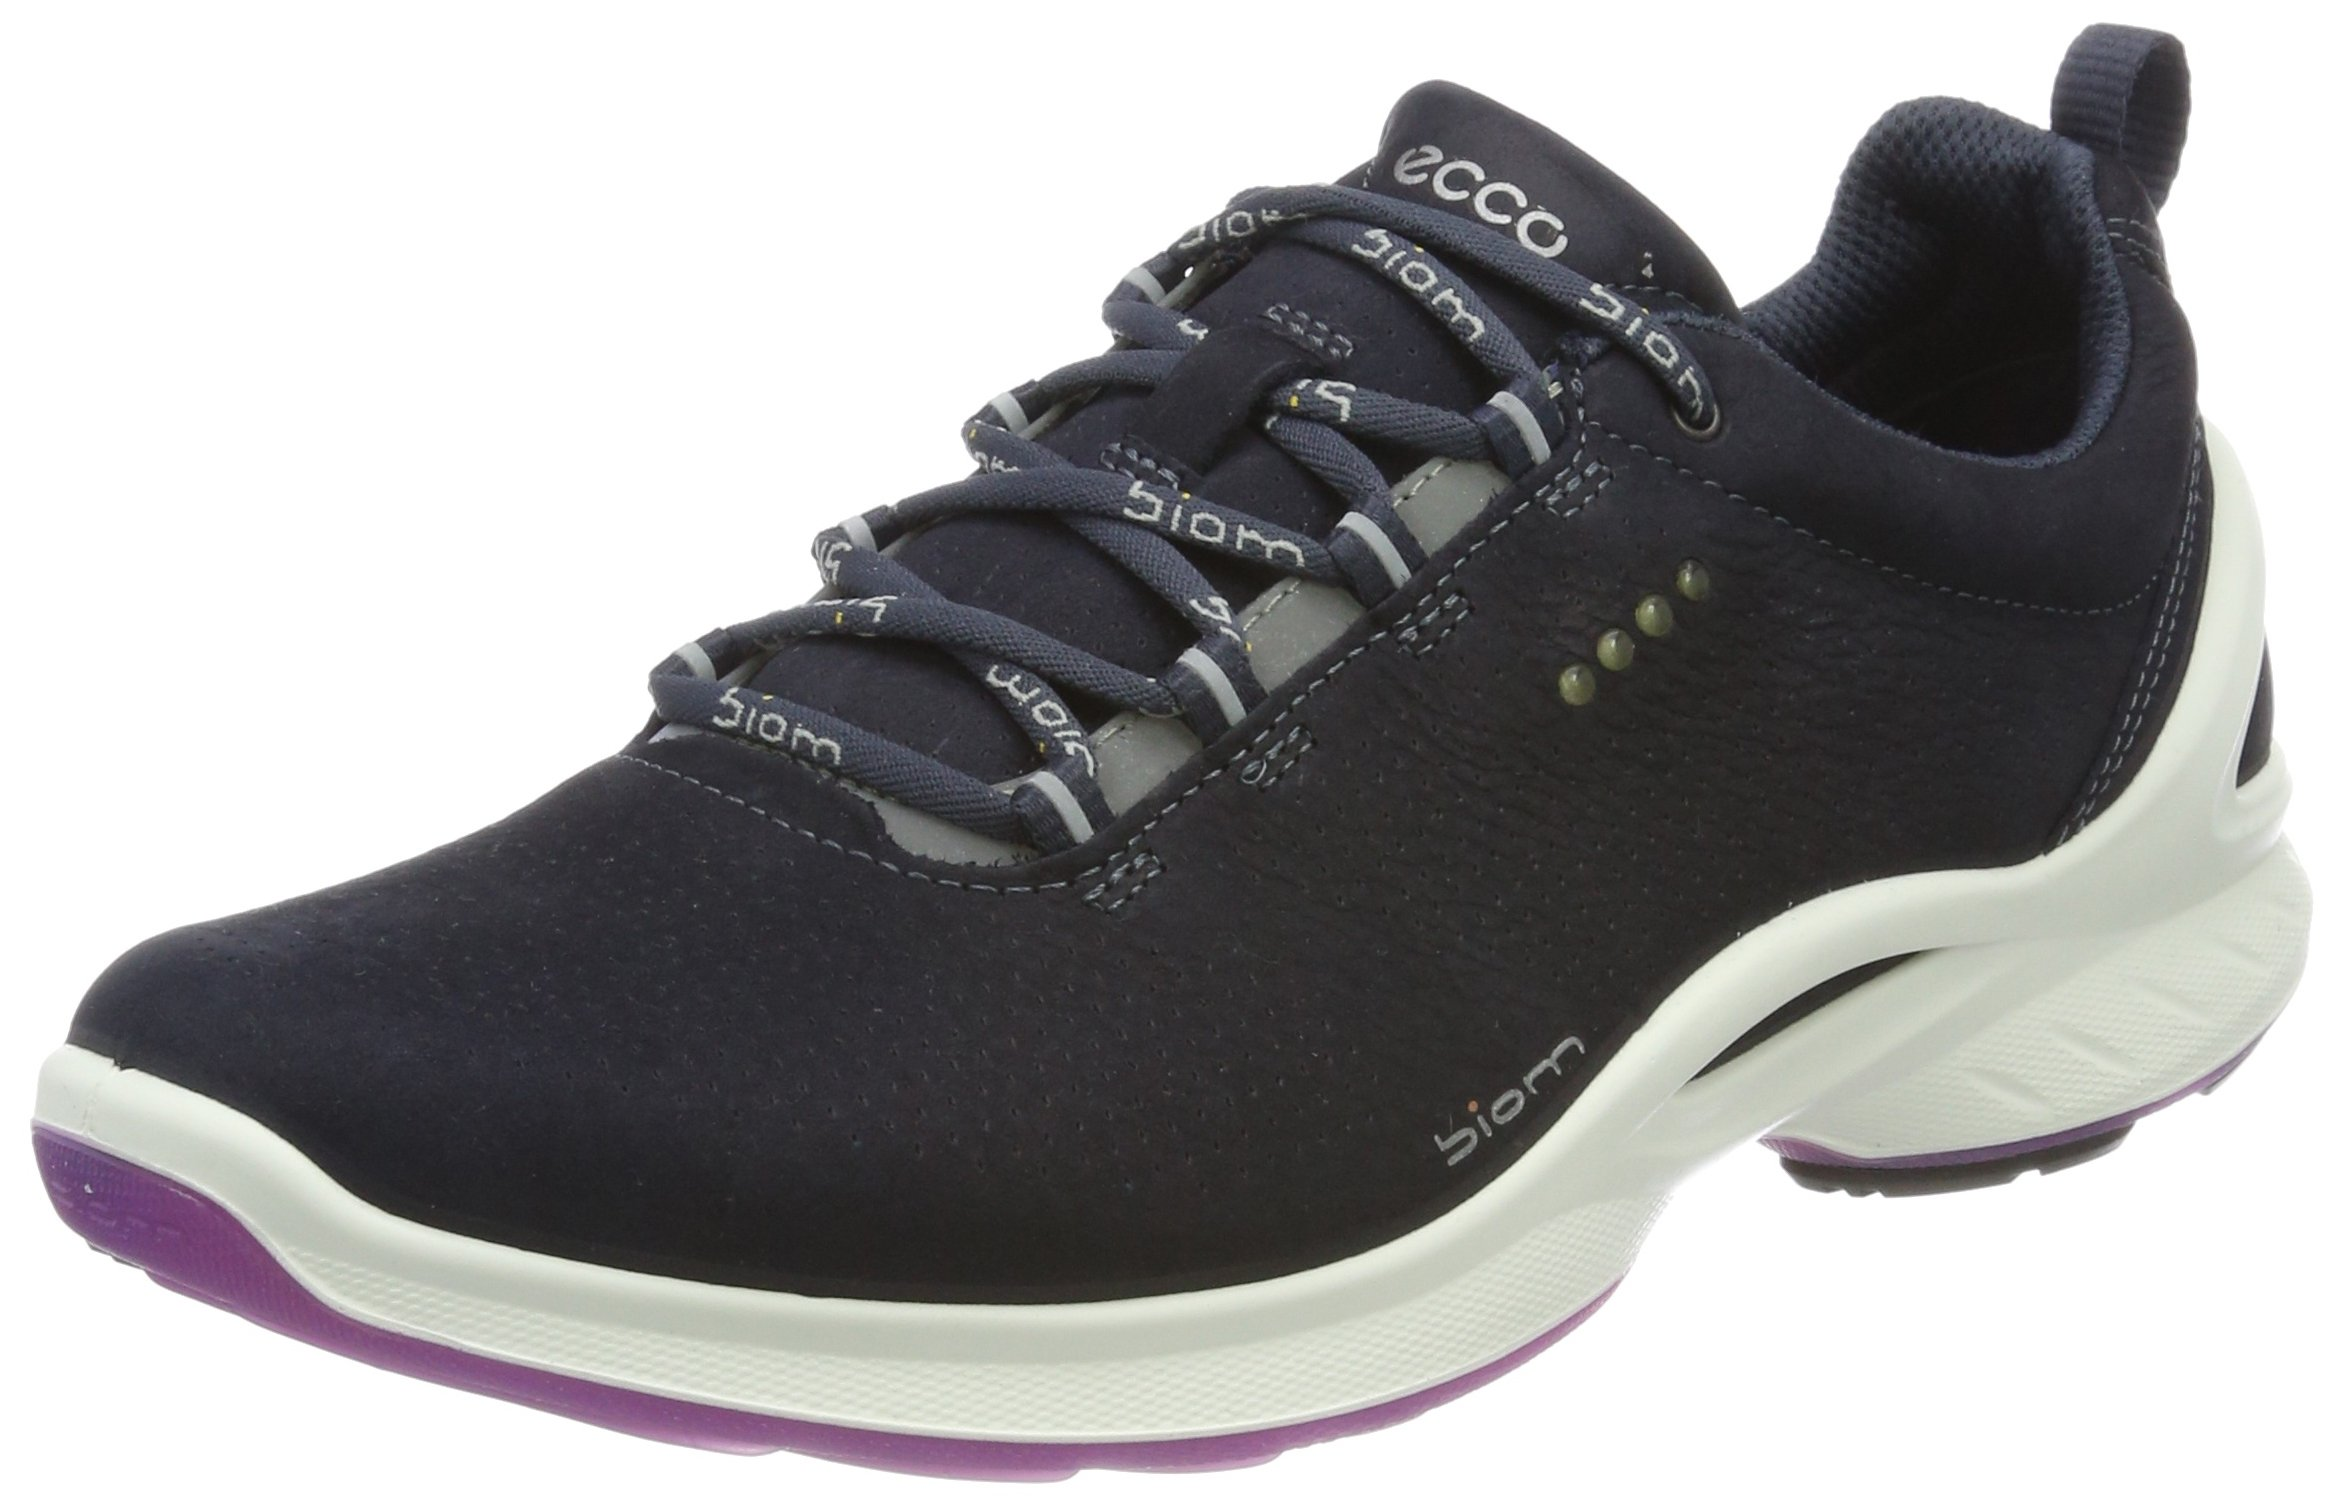 ECCO Women's Women's Biom Fjuel Train Walking Shoe, Navy, 41 EU/10-10.5 M US